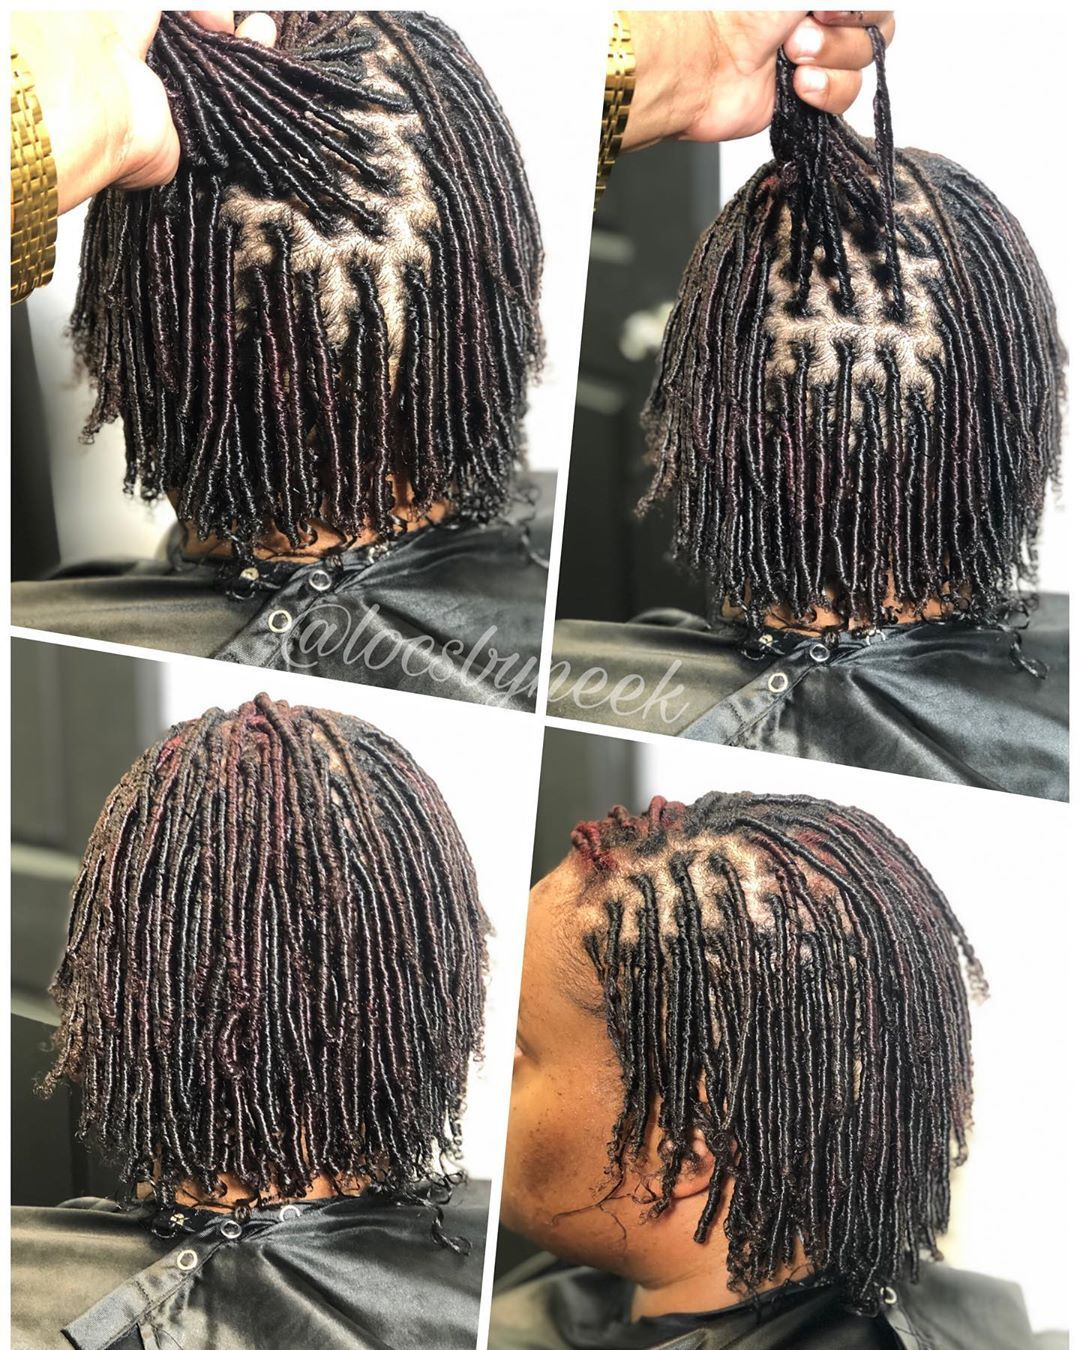 Ms Neek On Instagram Small Starter Locs Comb Coils Book Your Next Appointment With Neek Providing Qua Locs Hairstyles Hair Styles Short Locs Hairstyles